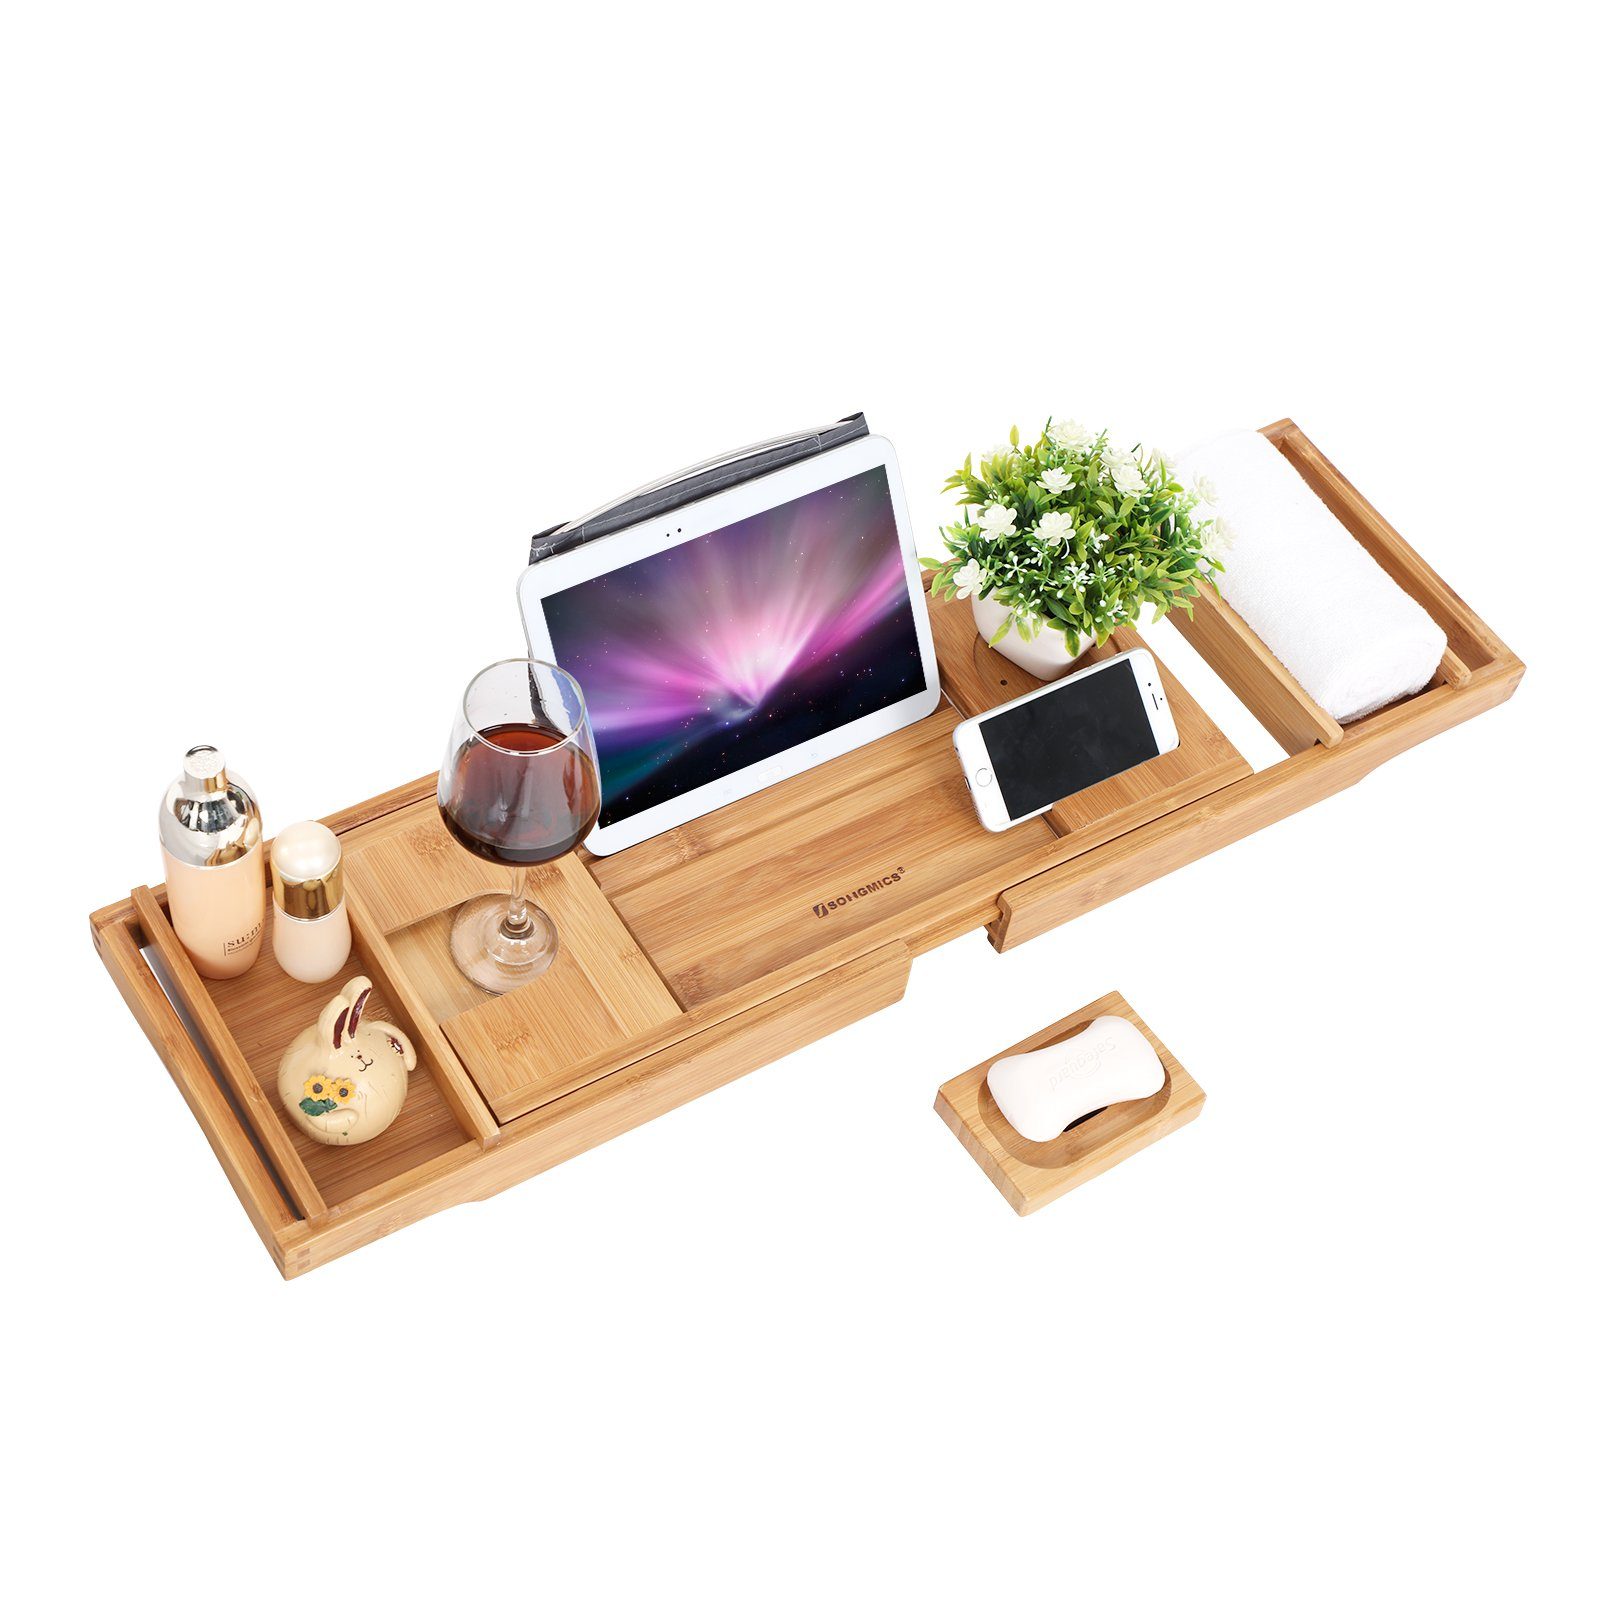 SONGMICS Bamboo Bathtub Caddy Tray, One or Two Person Bath and Bed Tray, with FREE Soap Holder UBCB88Y